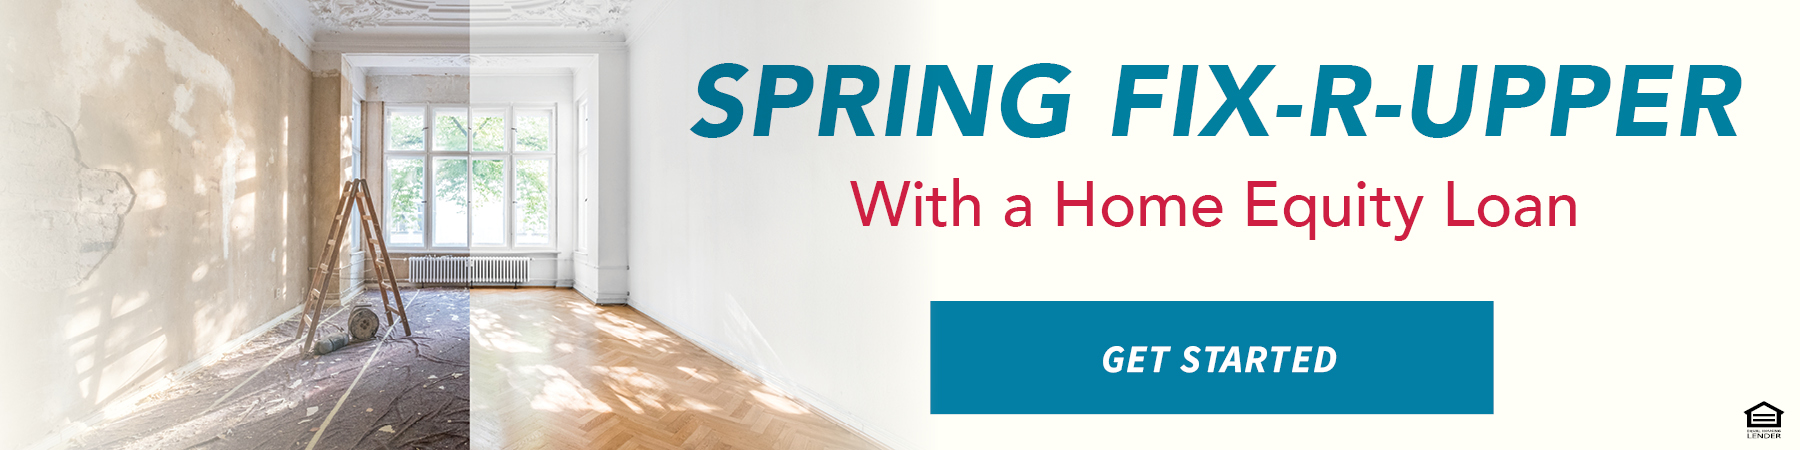 Spring Fix-R-Upper with a Home Equity Loan